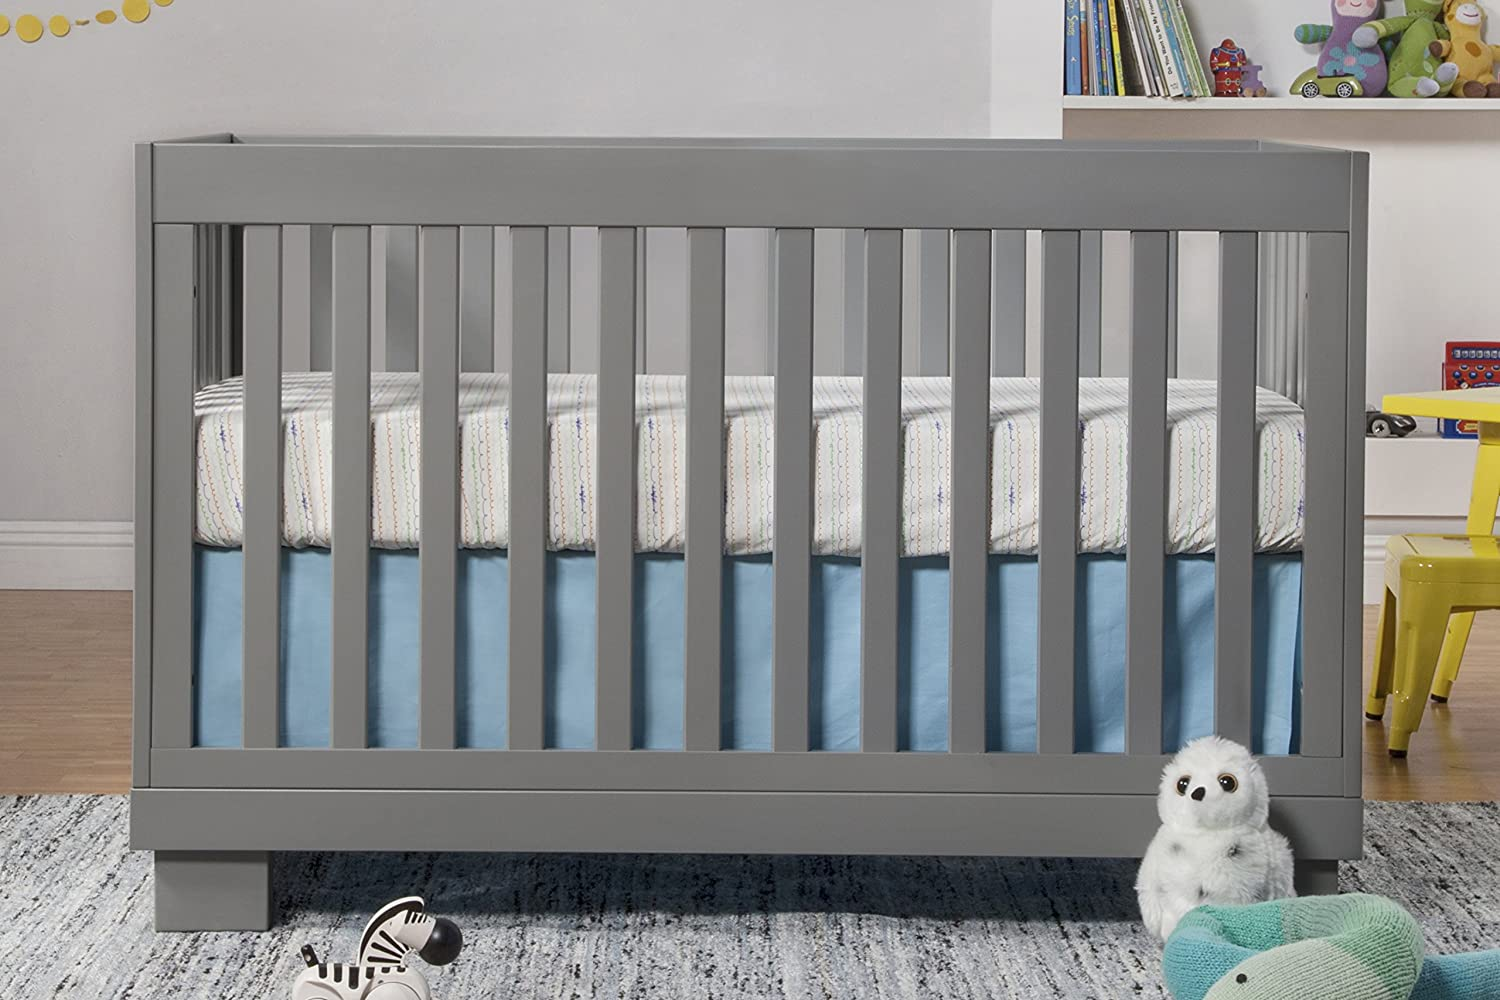 Baby bed hs code - Amazon Com Babyletto Modo 3 In 1 Convertible Crib With Toddler Rail Grey Baby